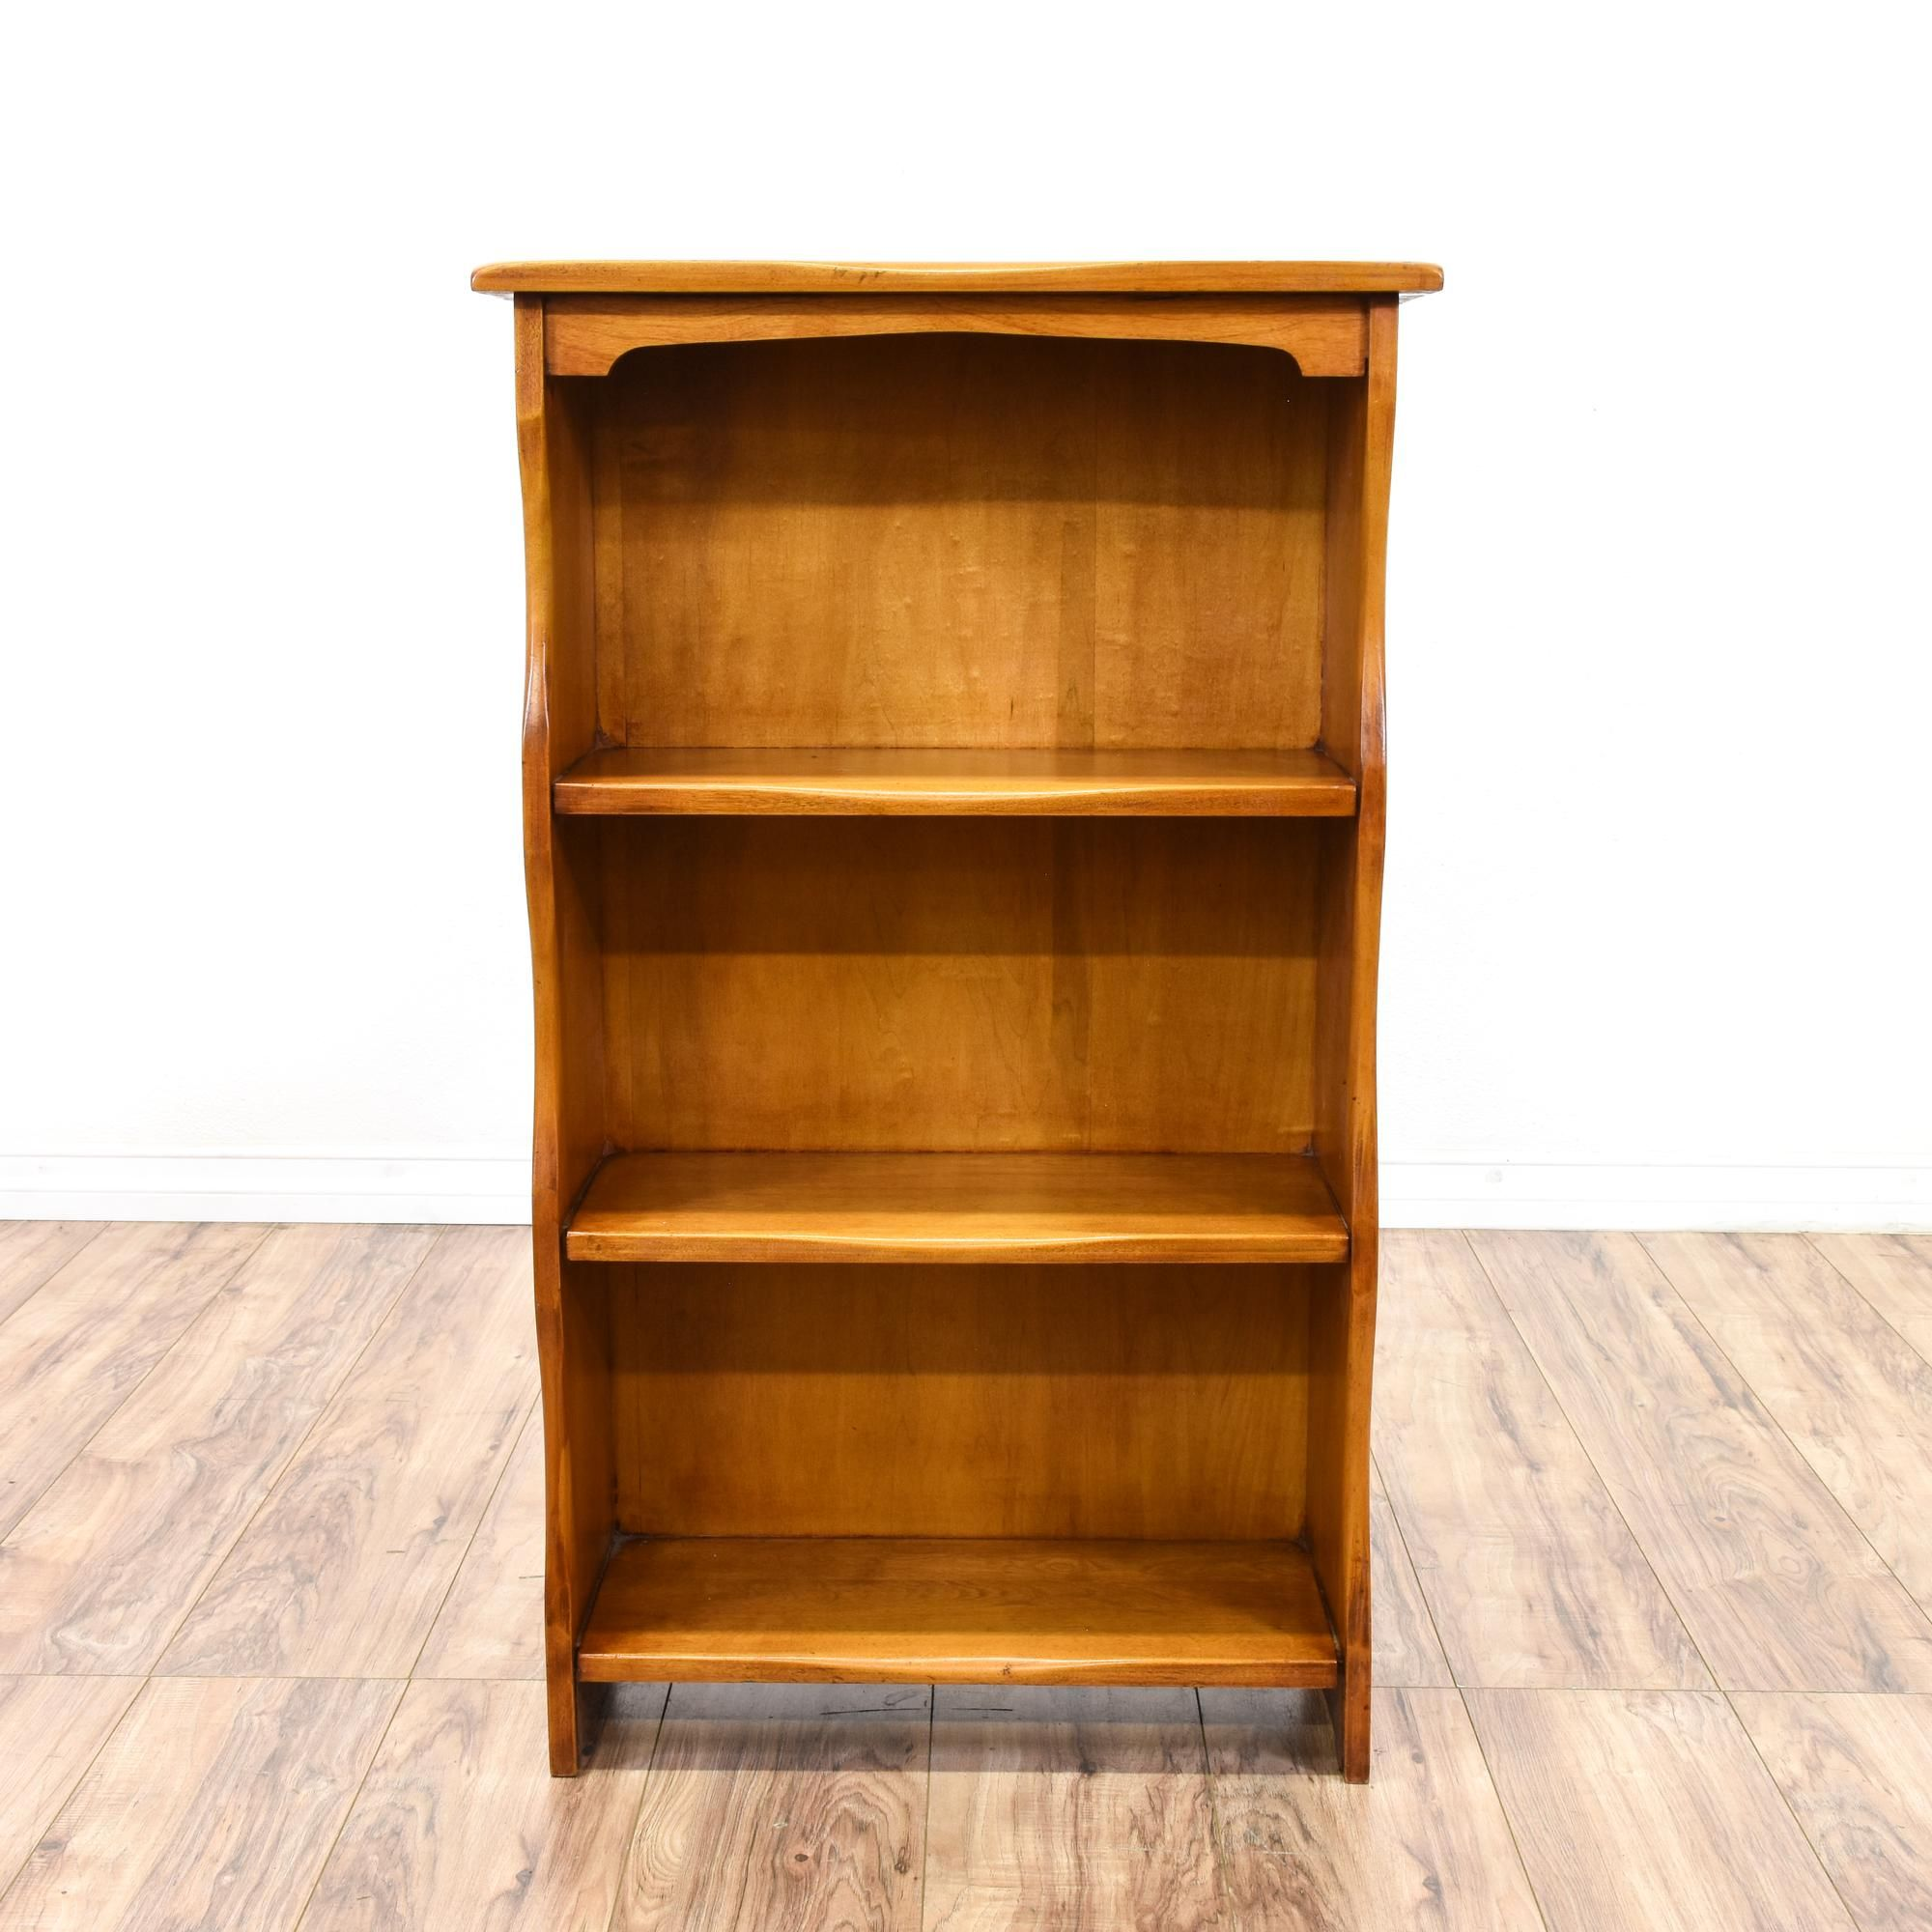 this bookcase is featured in a solid wood with a glossy maple